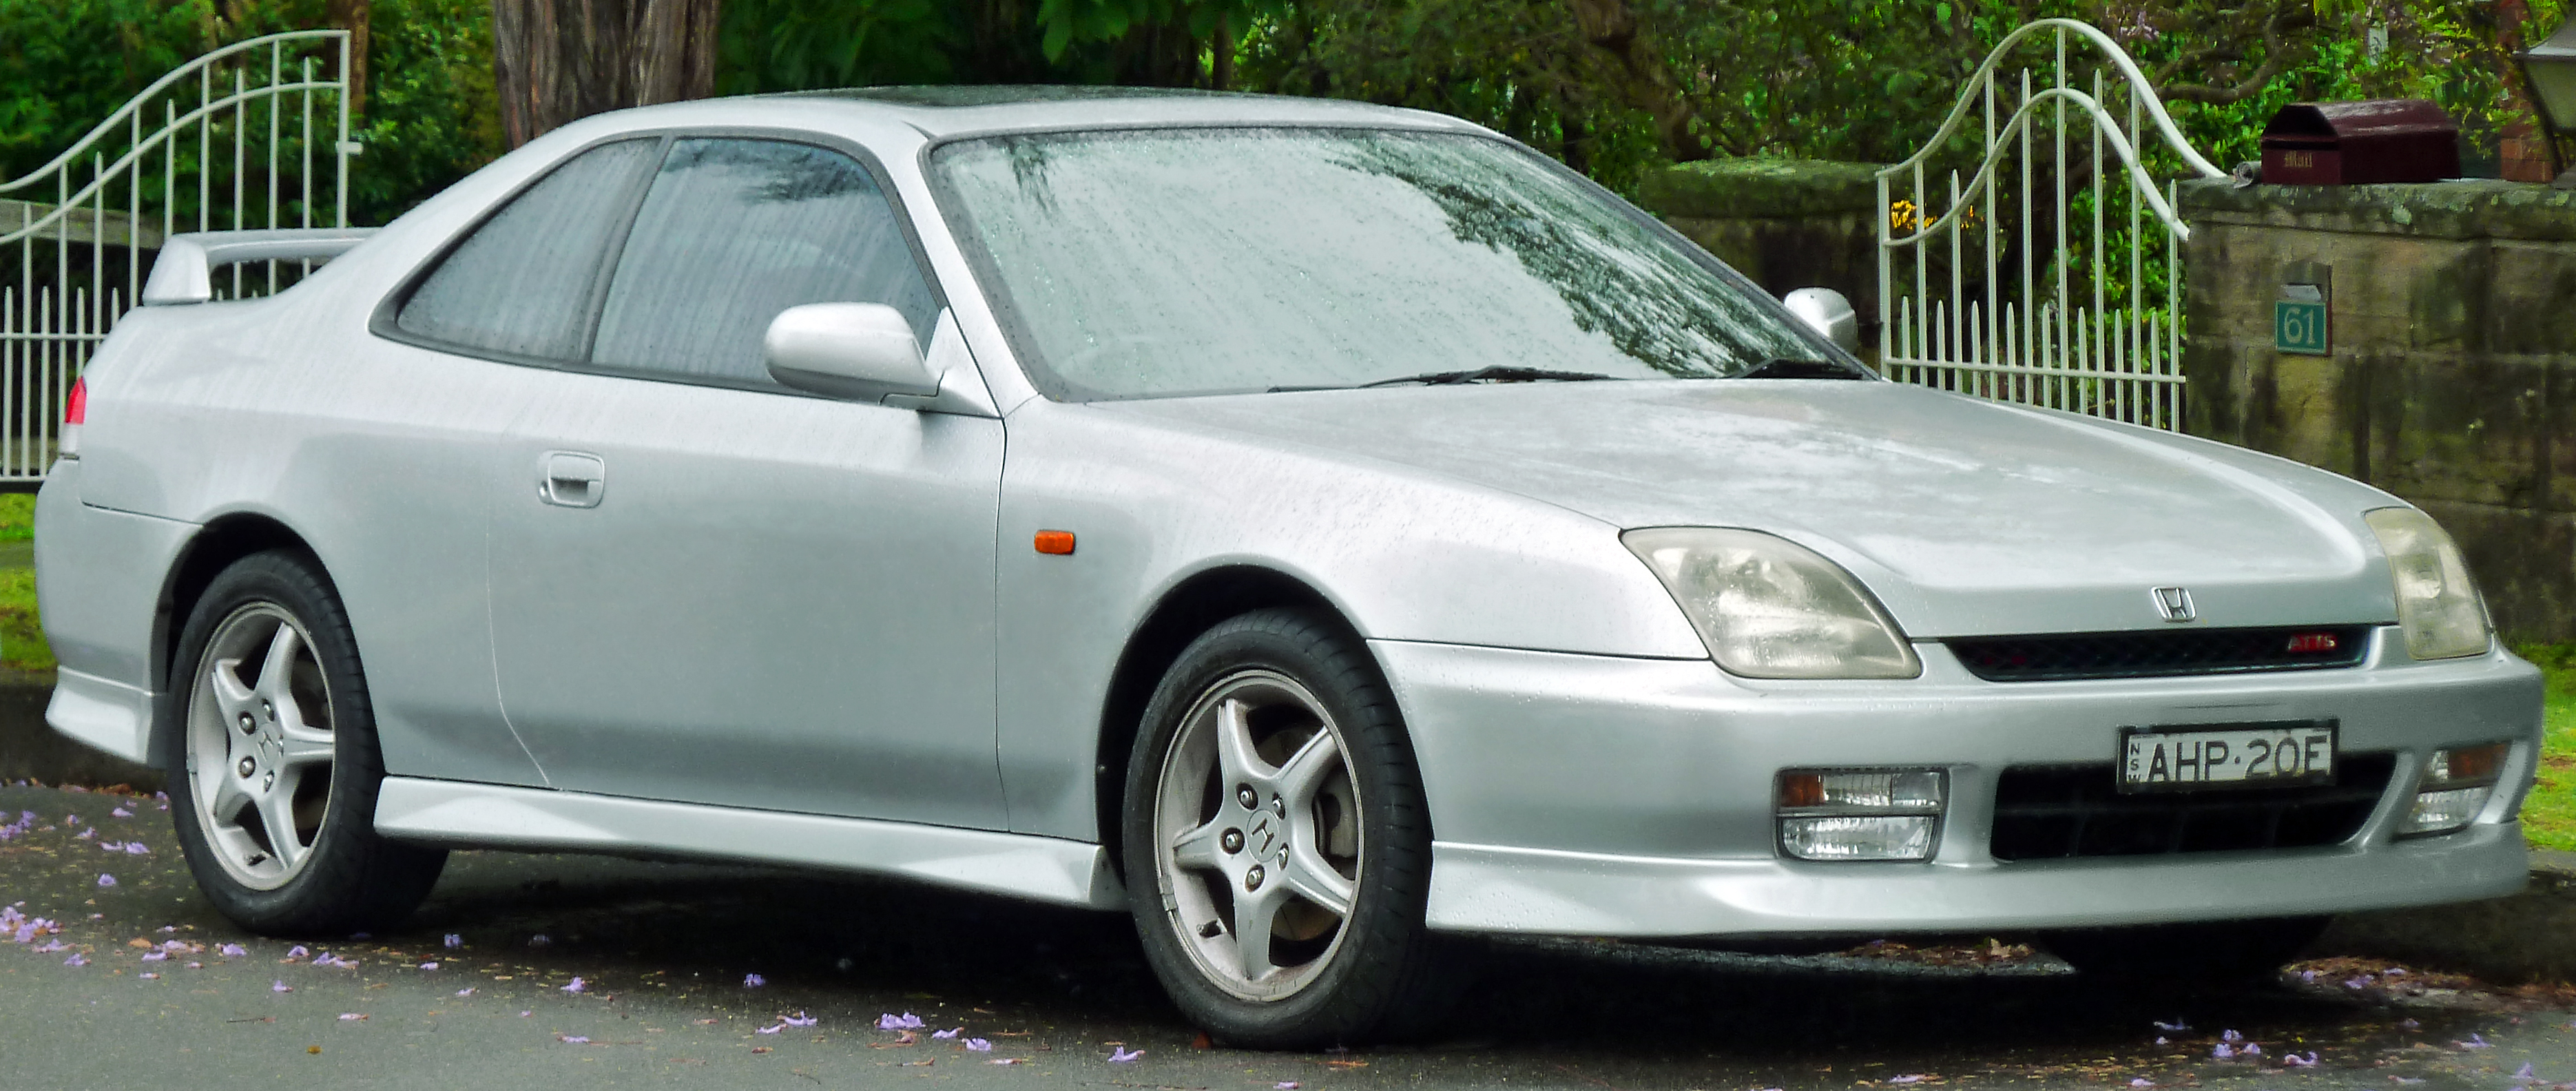 Honda Prelude Given A Sporty Facelift #16